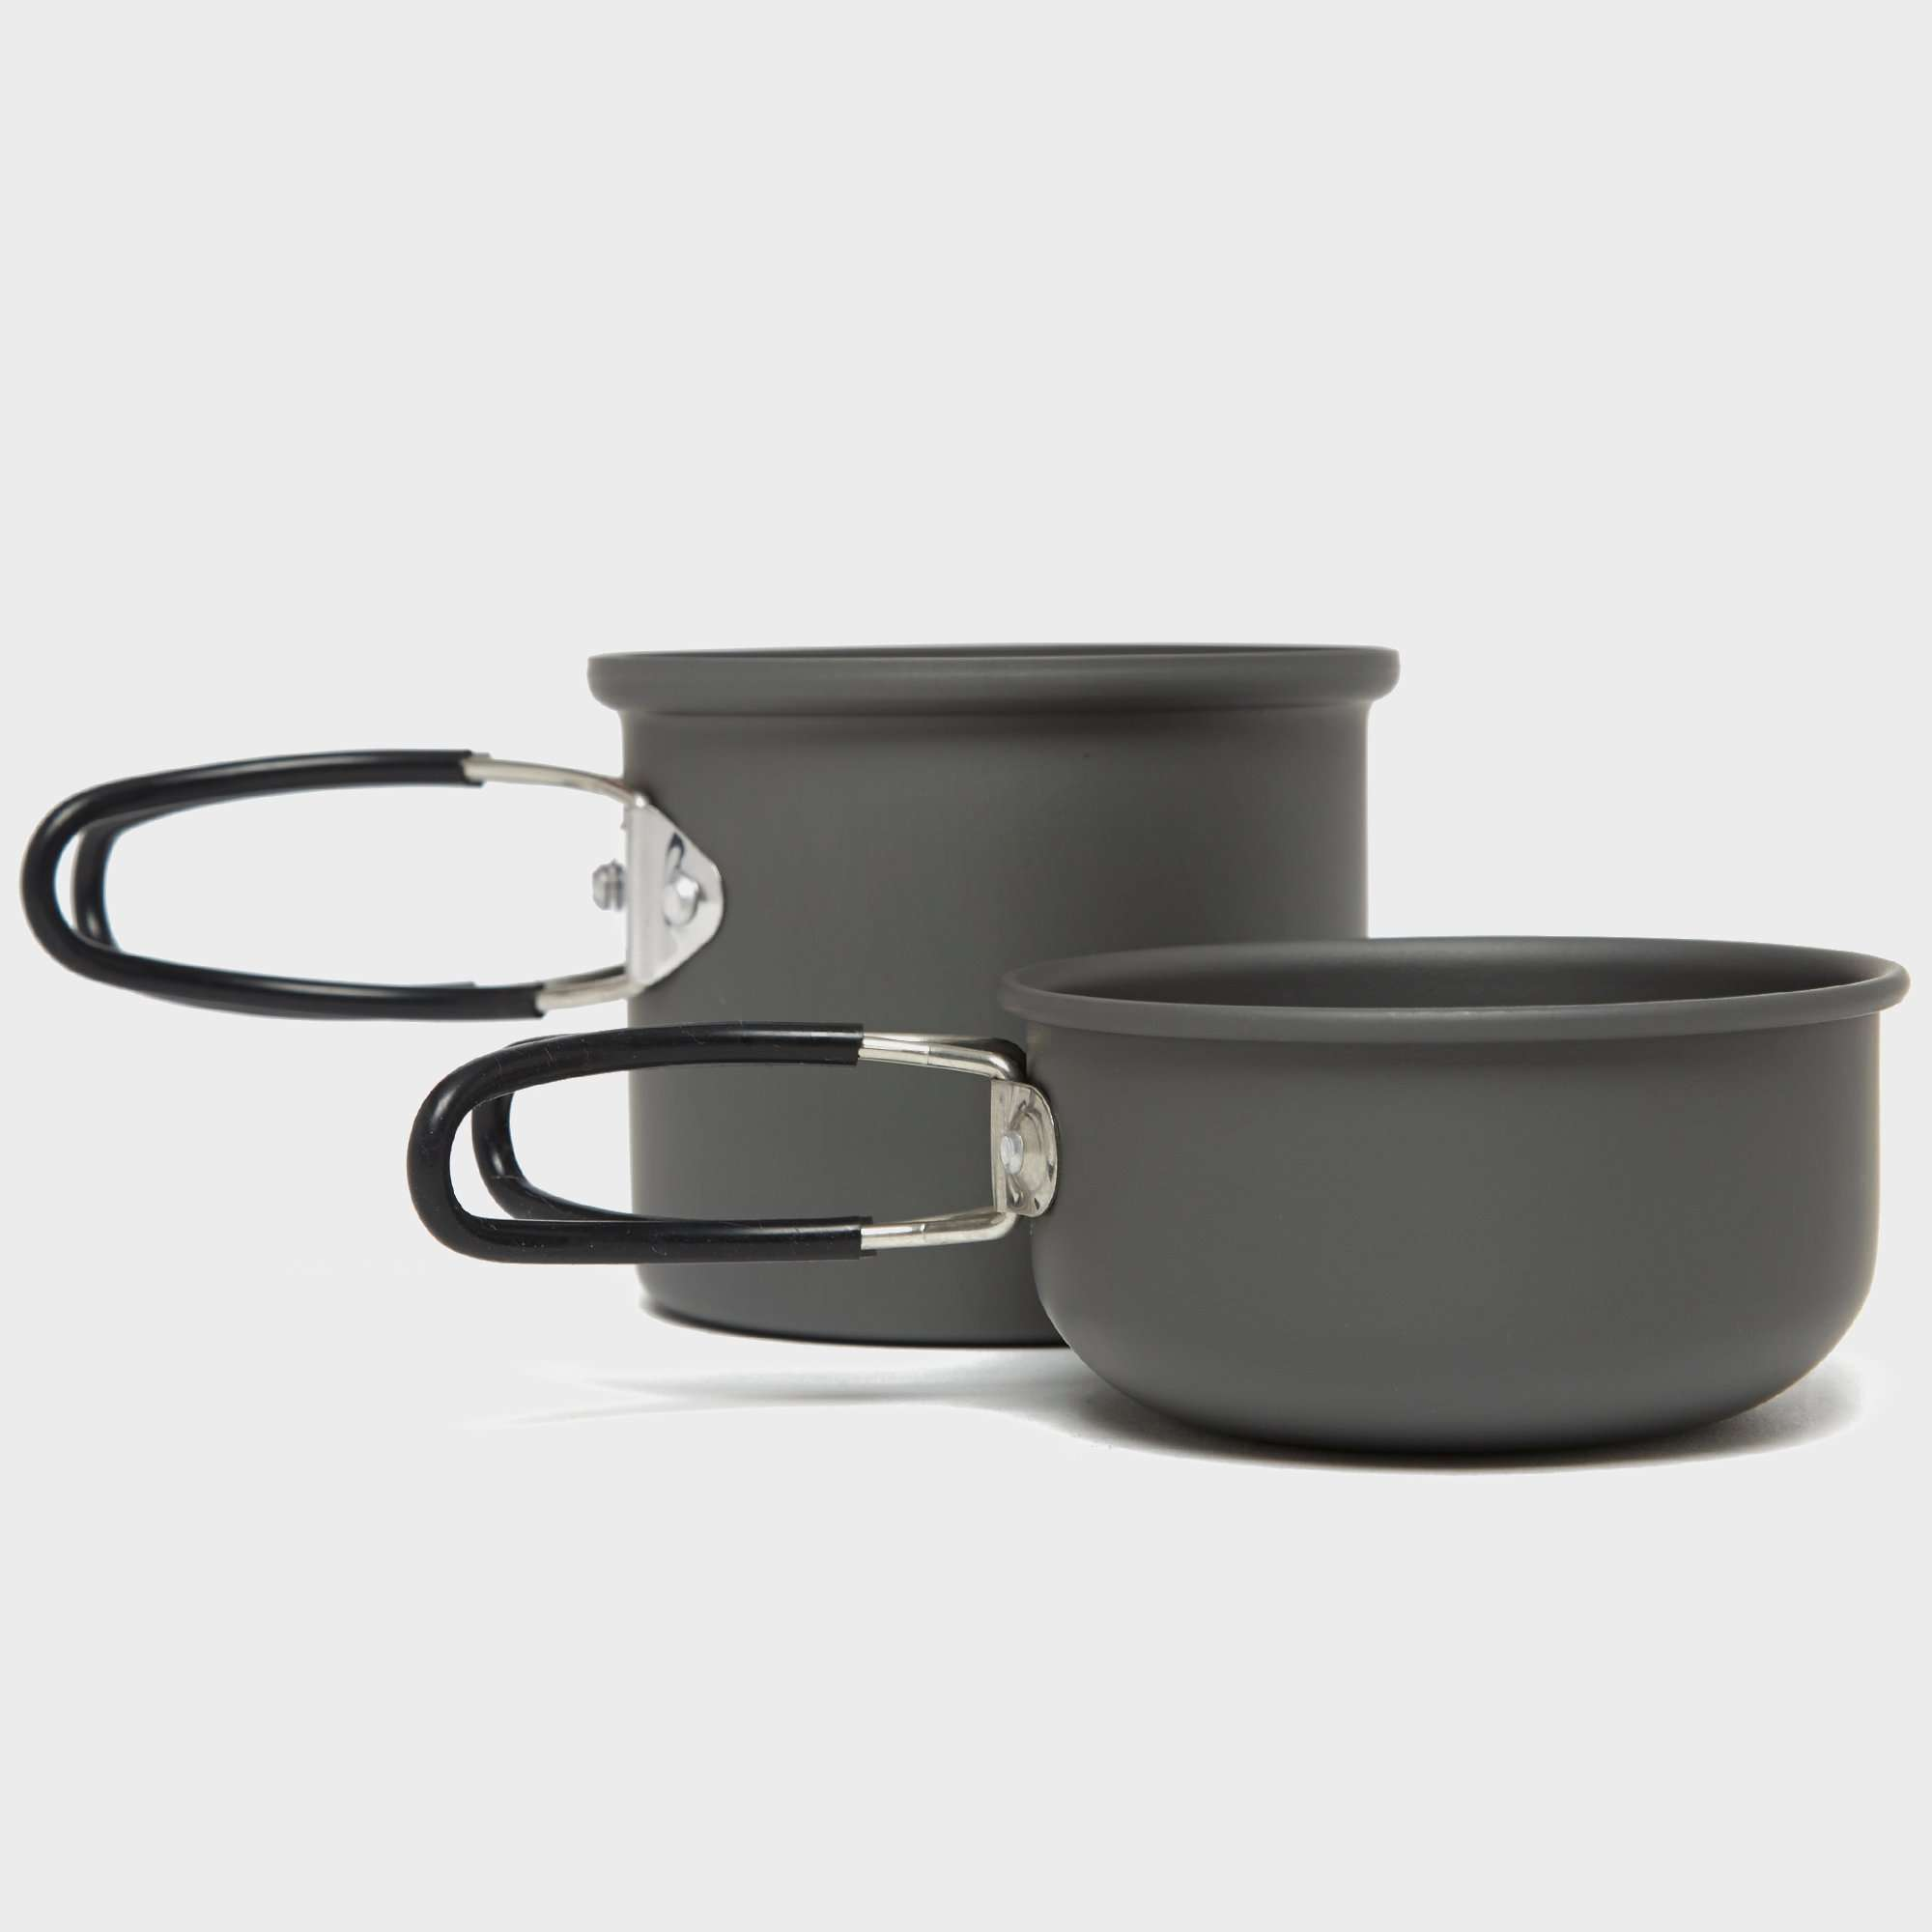 EUROHIKE Trek Solo Cooking Set